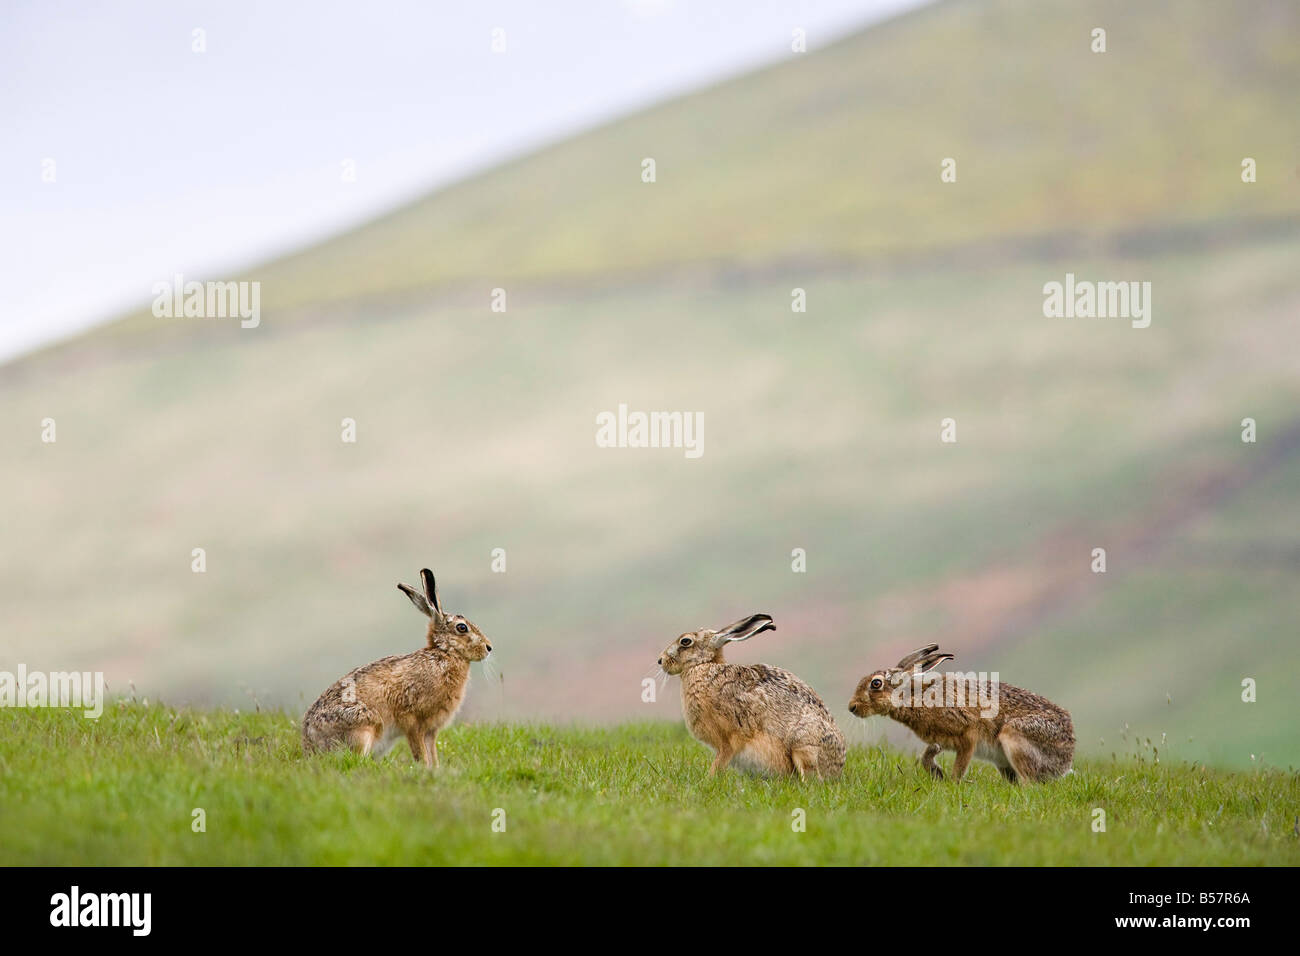 Brown hares (Lepus europaeus), Lower Fairsnape Farm, Bleasdale, Lancashire, England, United Kingdom, Europe - Stock Image